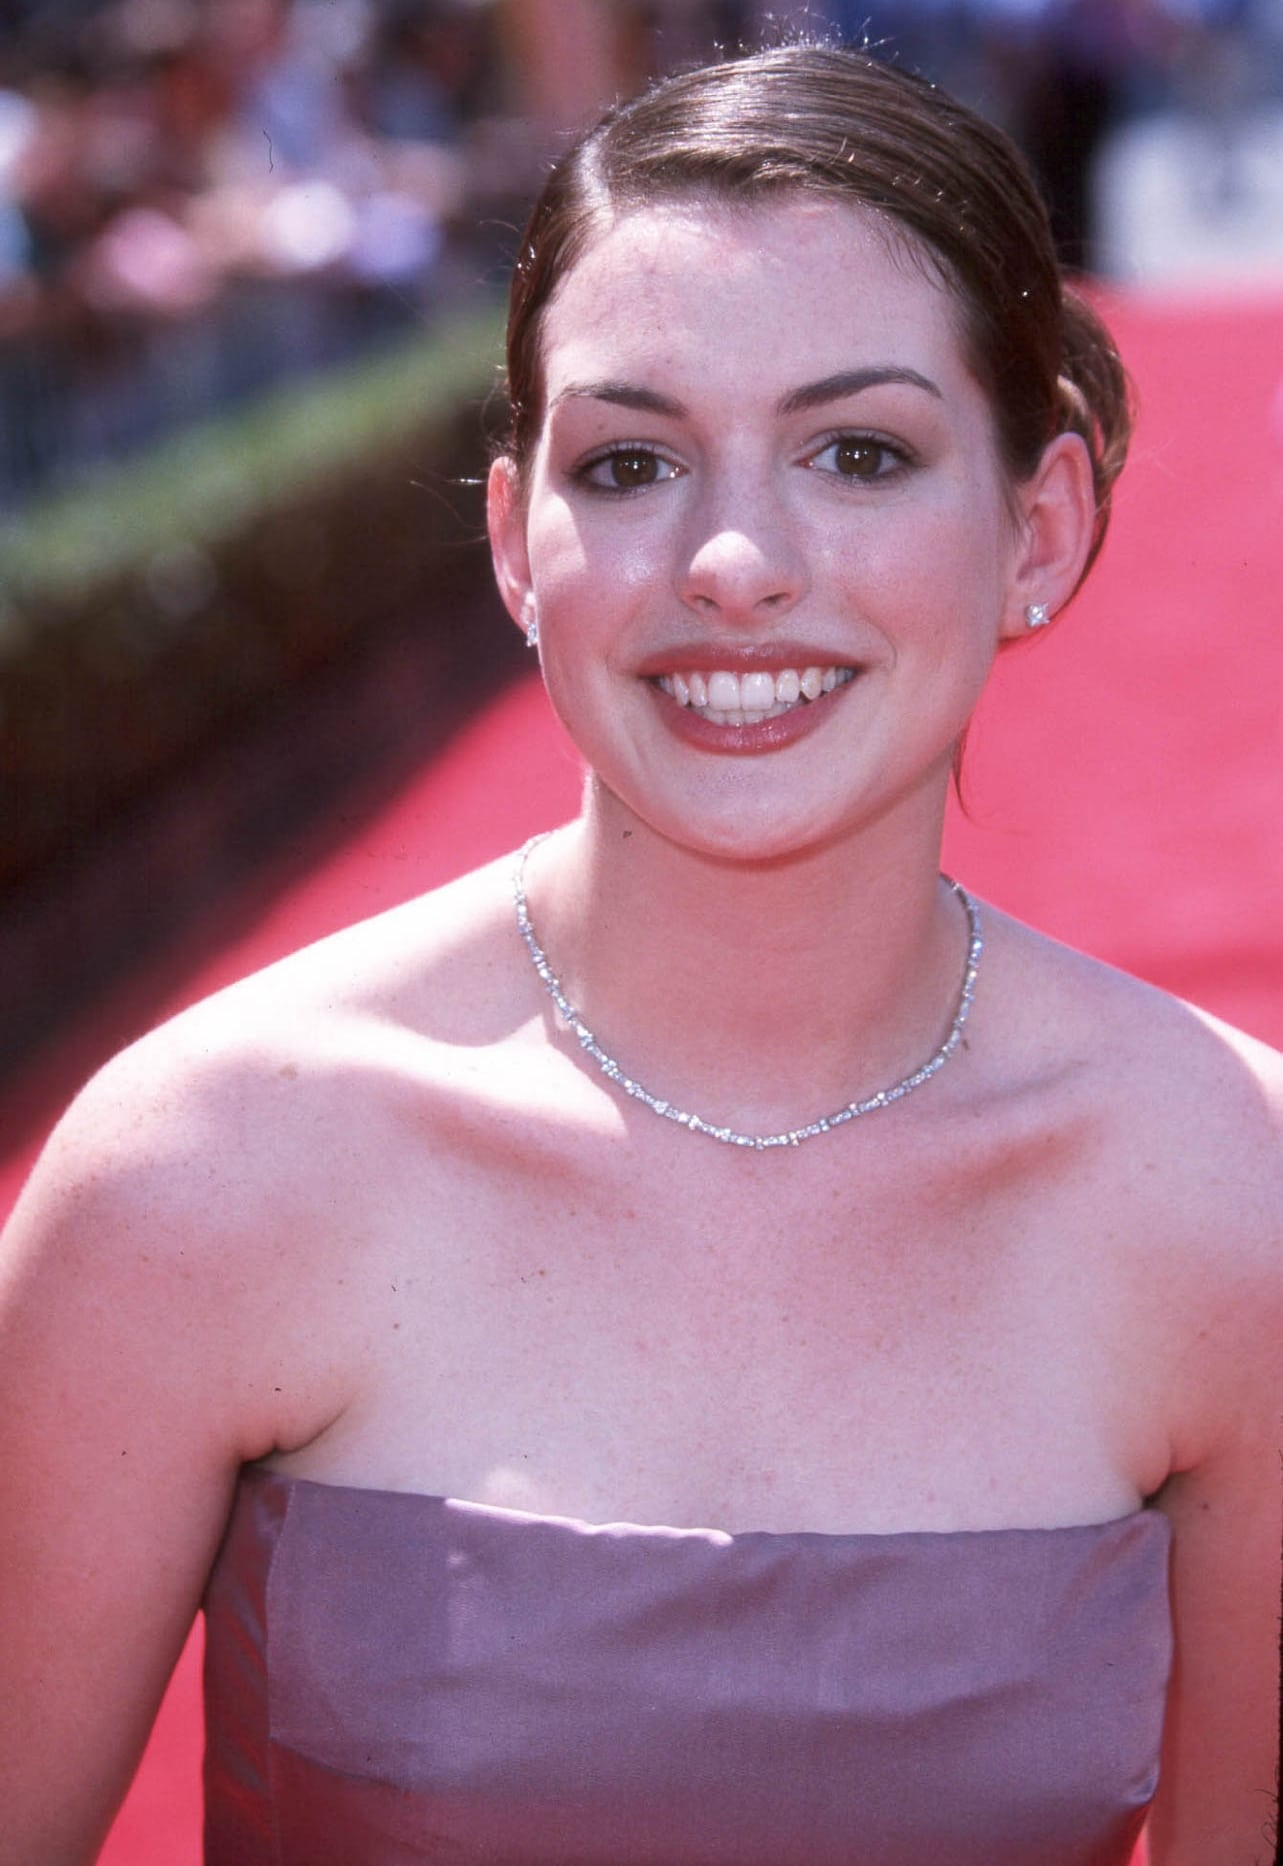 Anne Hathaway made her breakthrough as Mia Thermopolis in her debut film, the Disney comedy The Princess Diaries